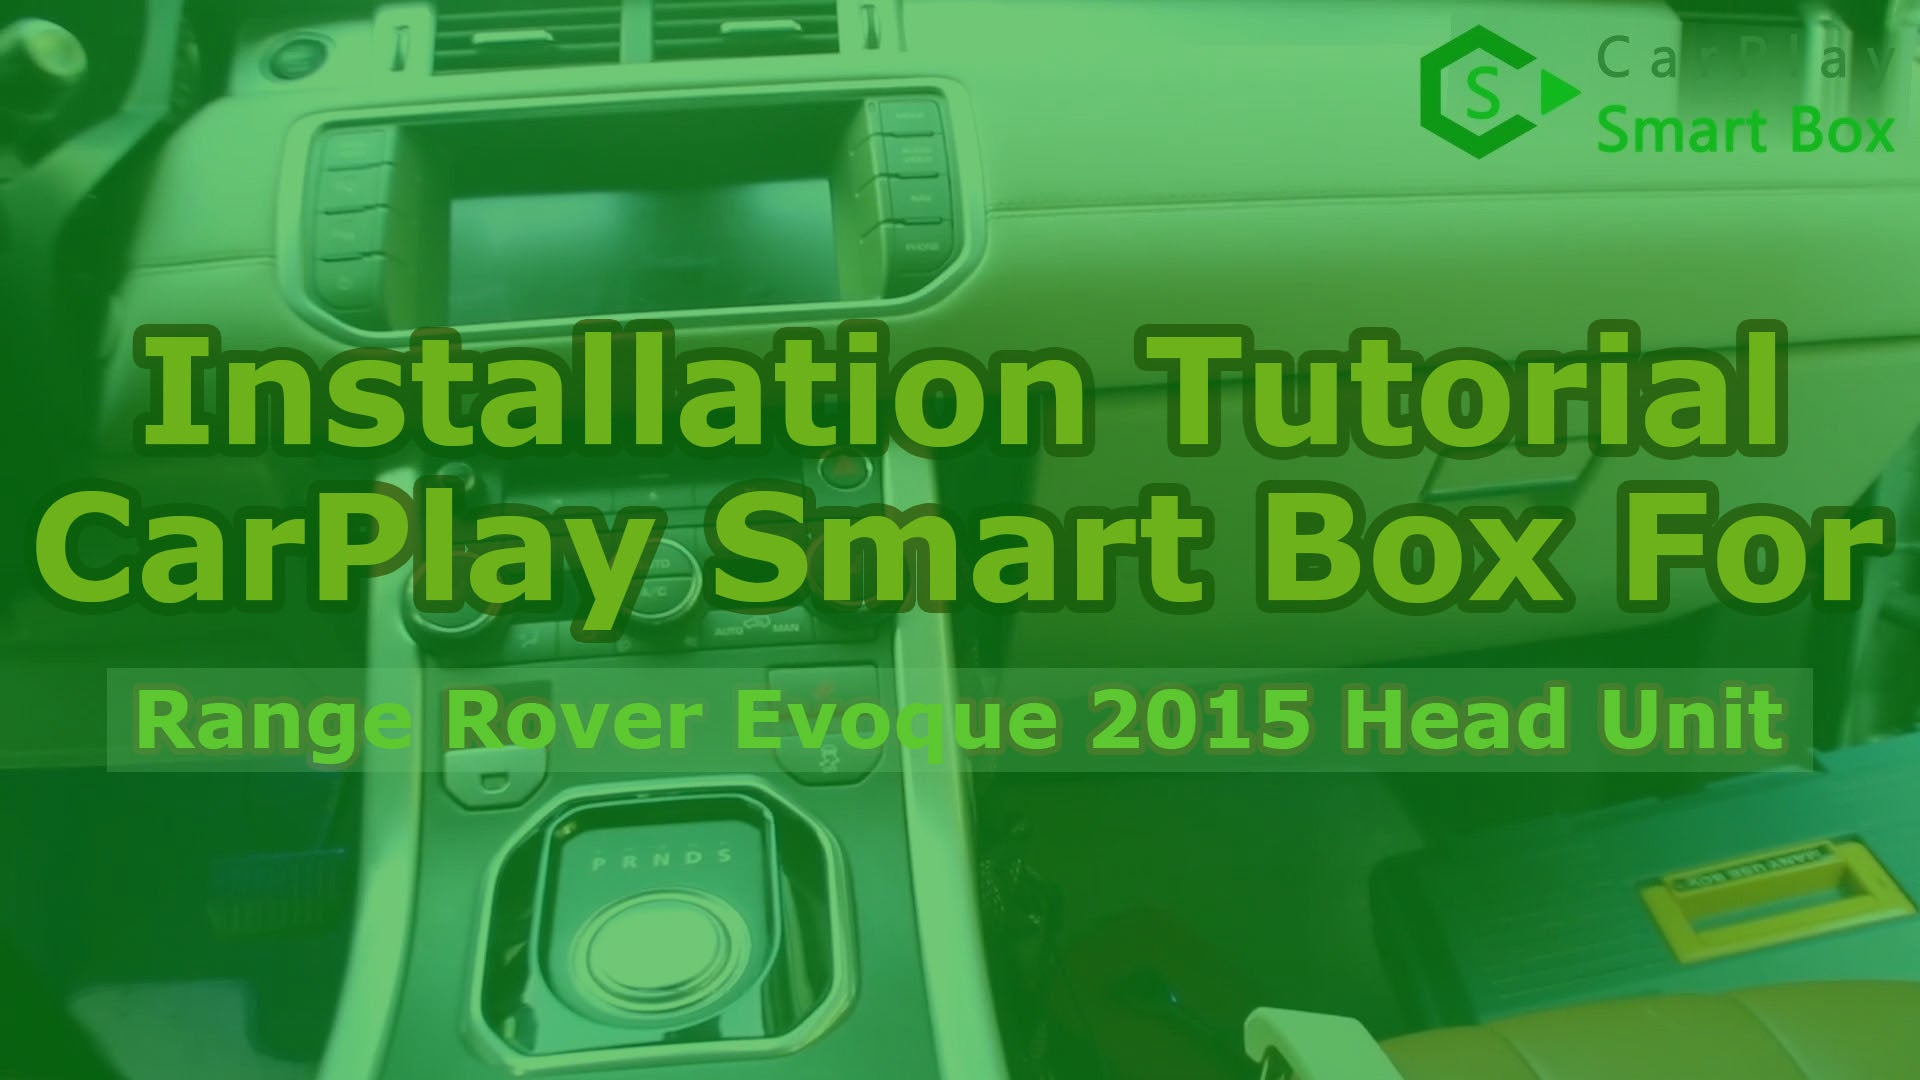 (Range Rover Evoque Bosch Head Unit) Wireless Apple CarPlay Smart Box Installation for Range Rover Evoque 2015